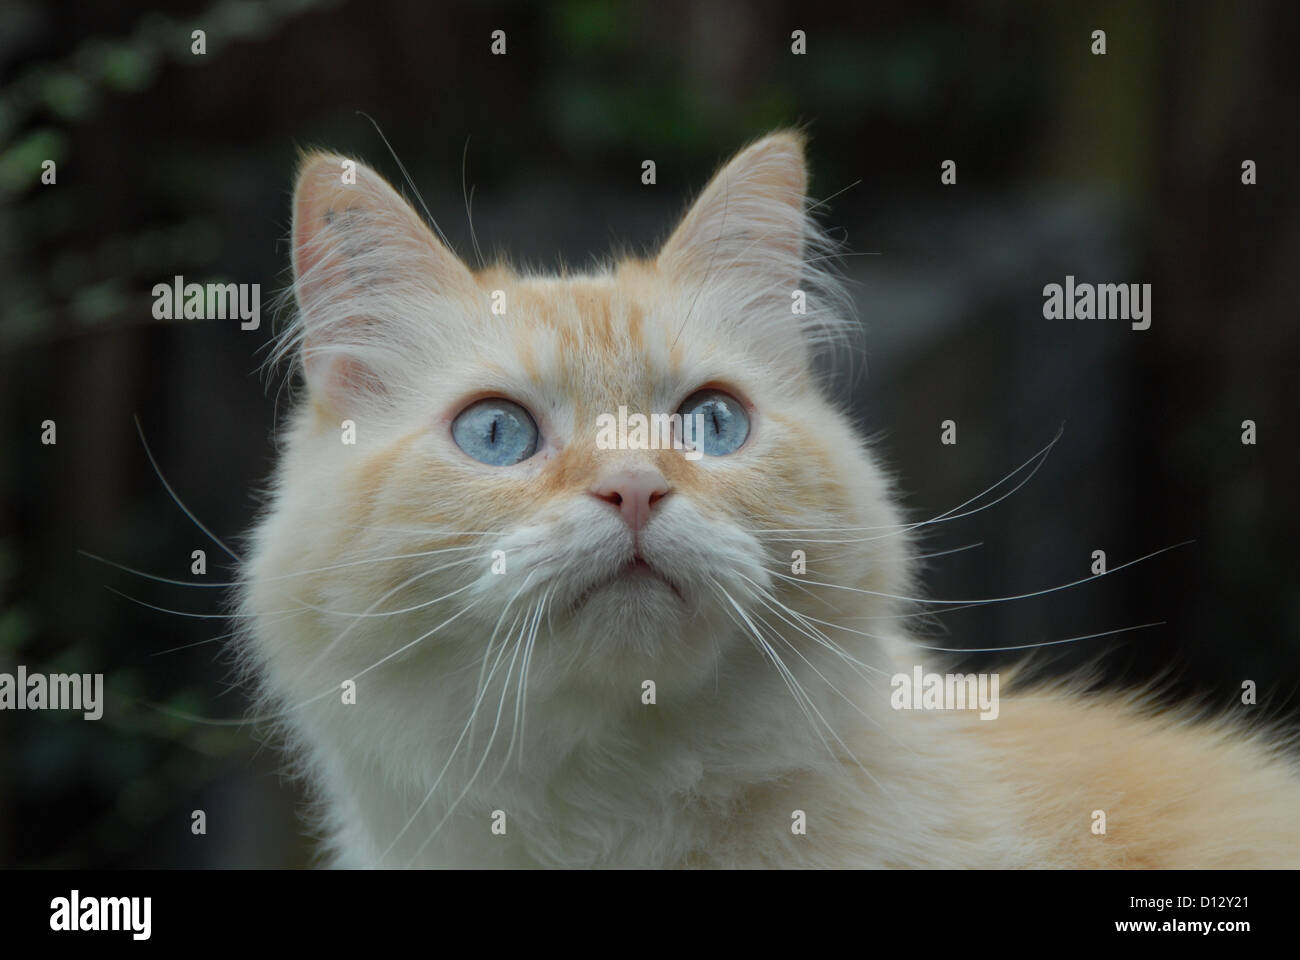 Hauskatze, Creme-Tabby-Point mit blauen Augen, Portraet, cat, Cream-Tabby-Point Blue-eyed, portrait, felis silvestris - Stock Image